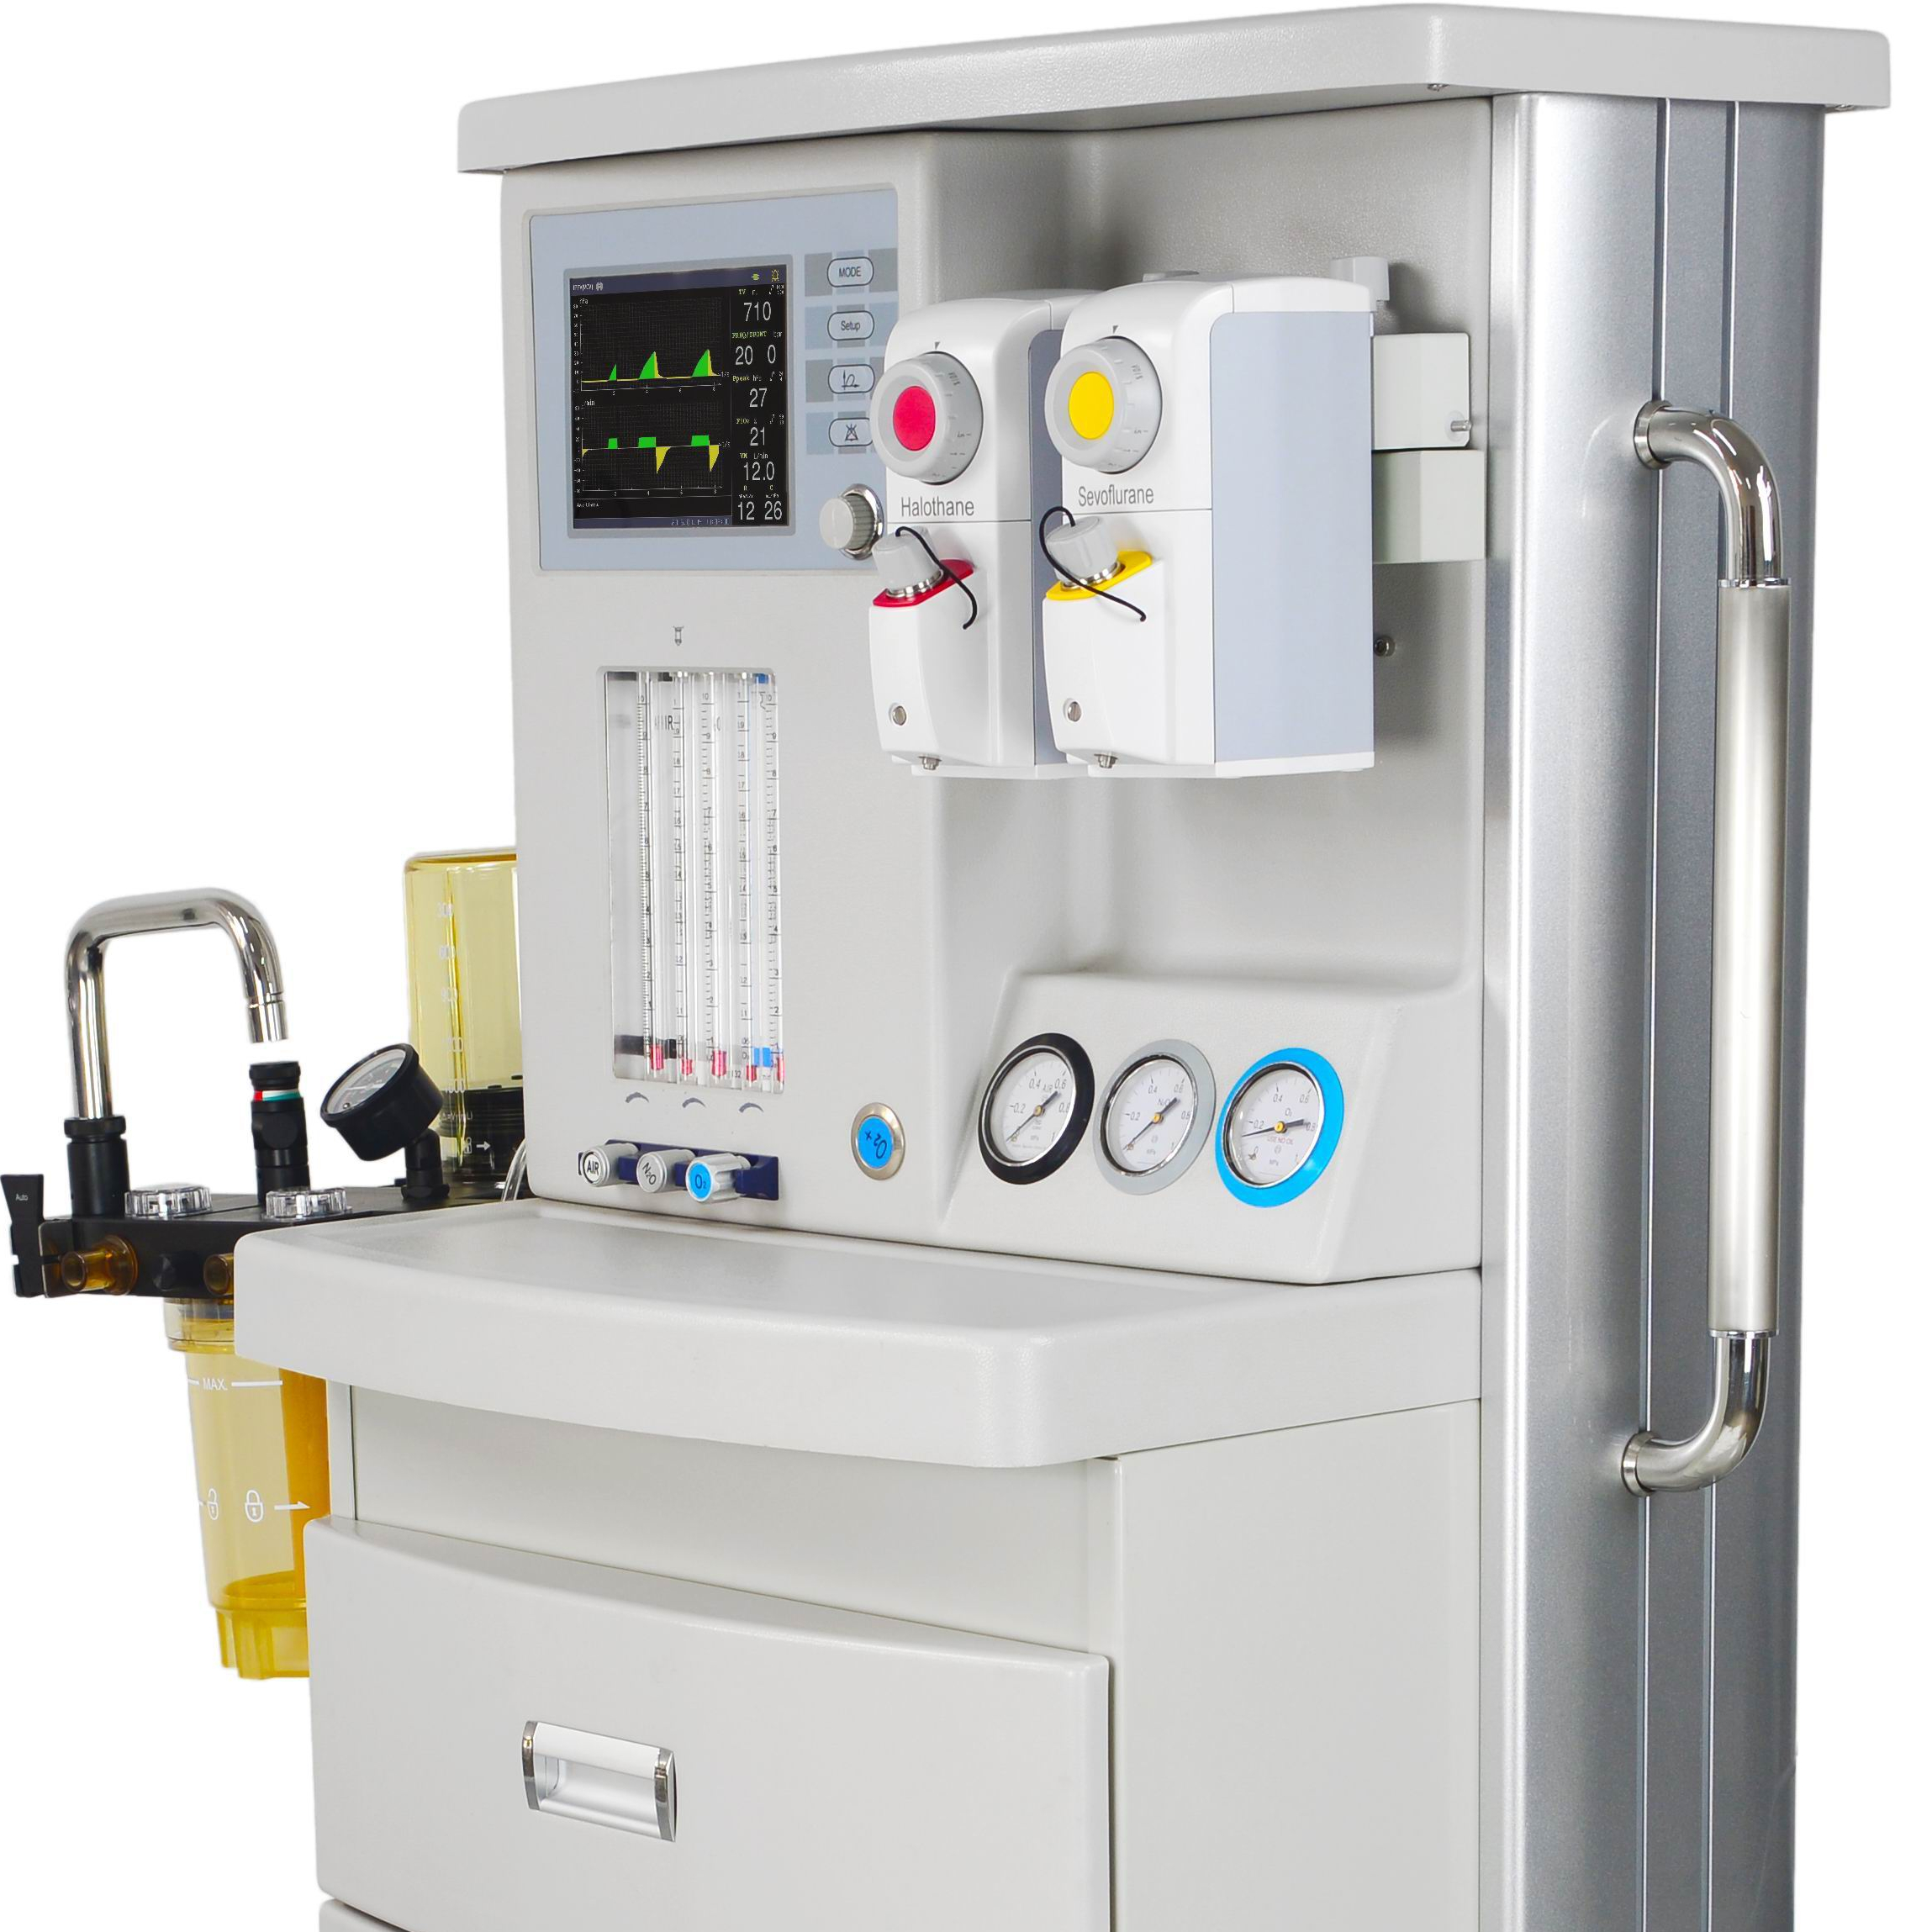 Ha-3800A Hot Sell Medical Equipment Anesthesia Machine with 2 Vaporizer for Hospital - KingCare | KingCare.net